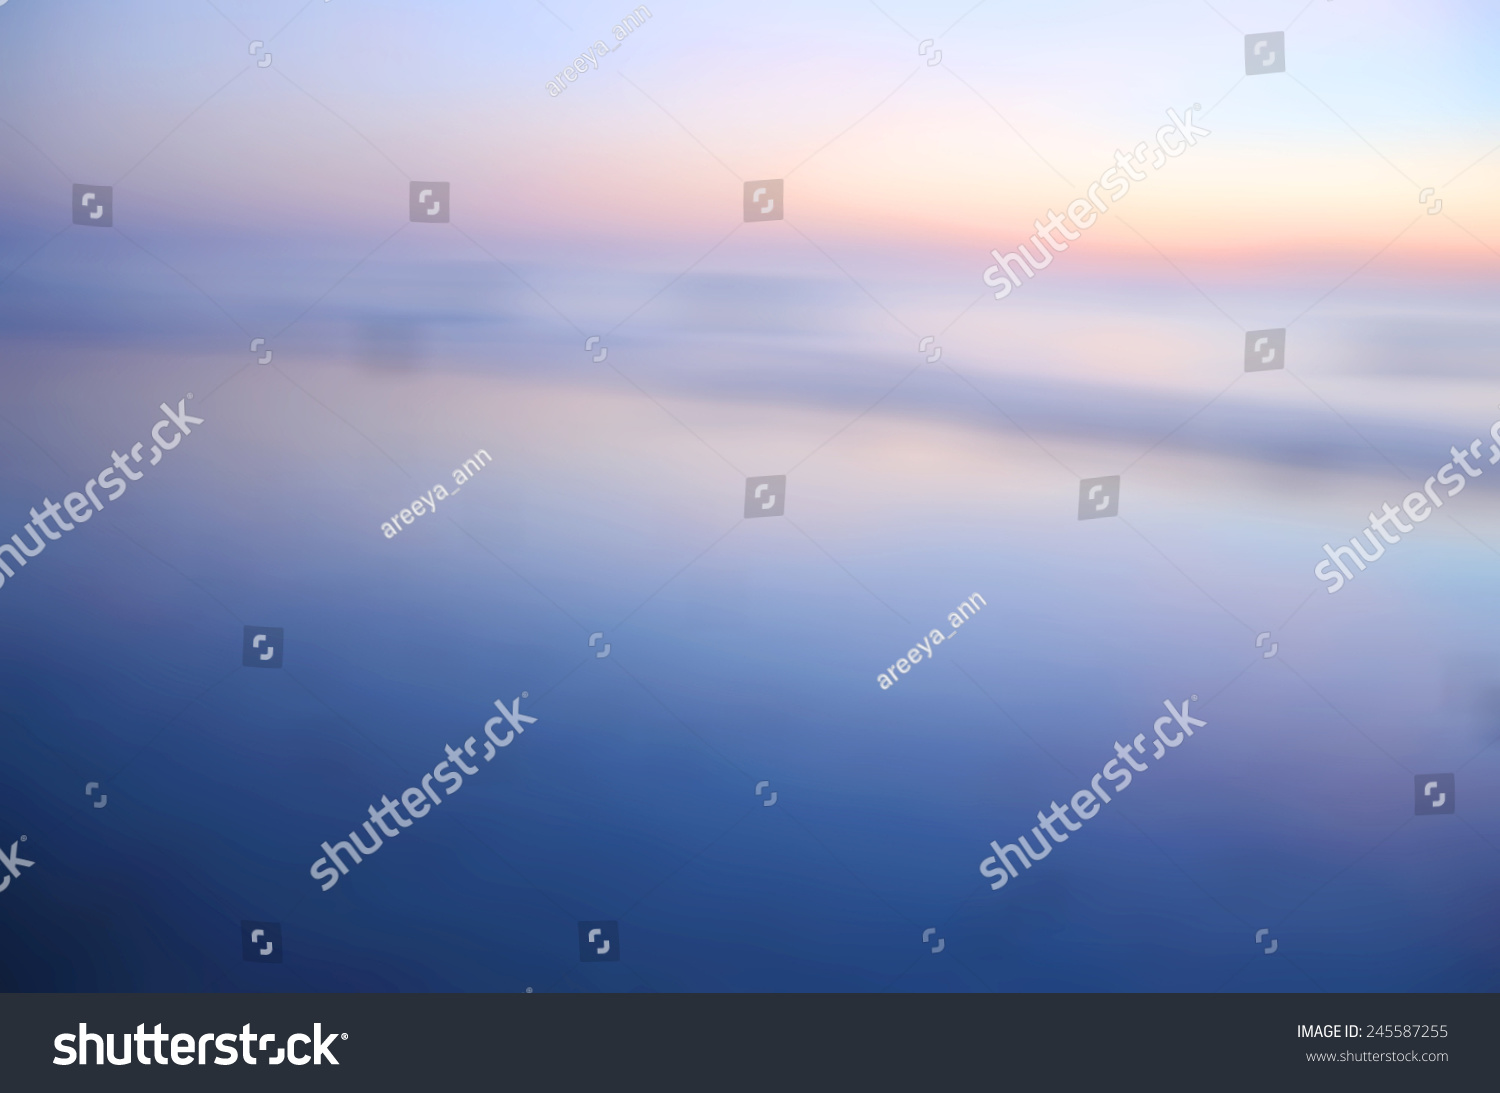 light natural phenomenon stock - photo #38